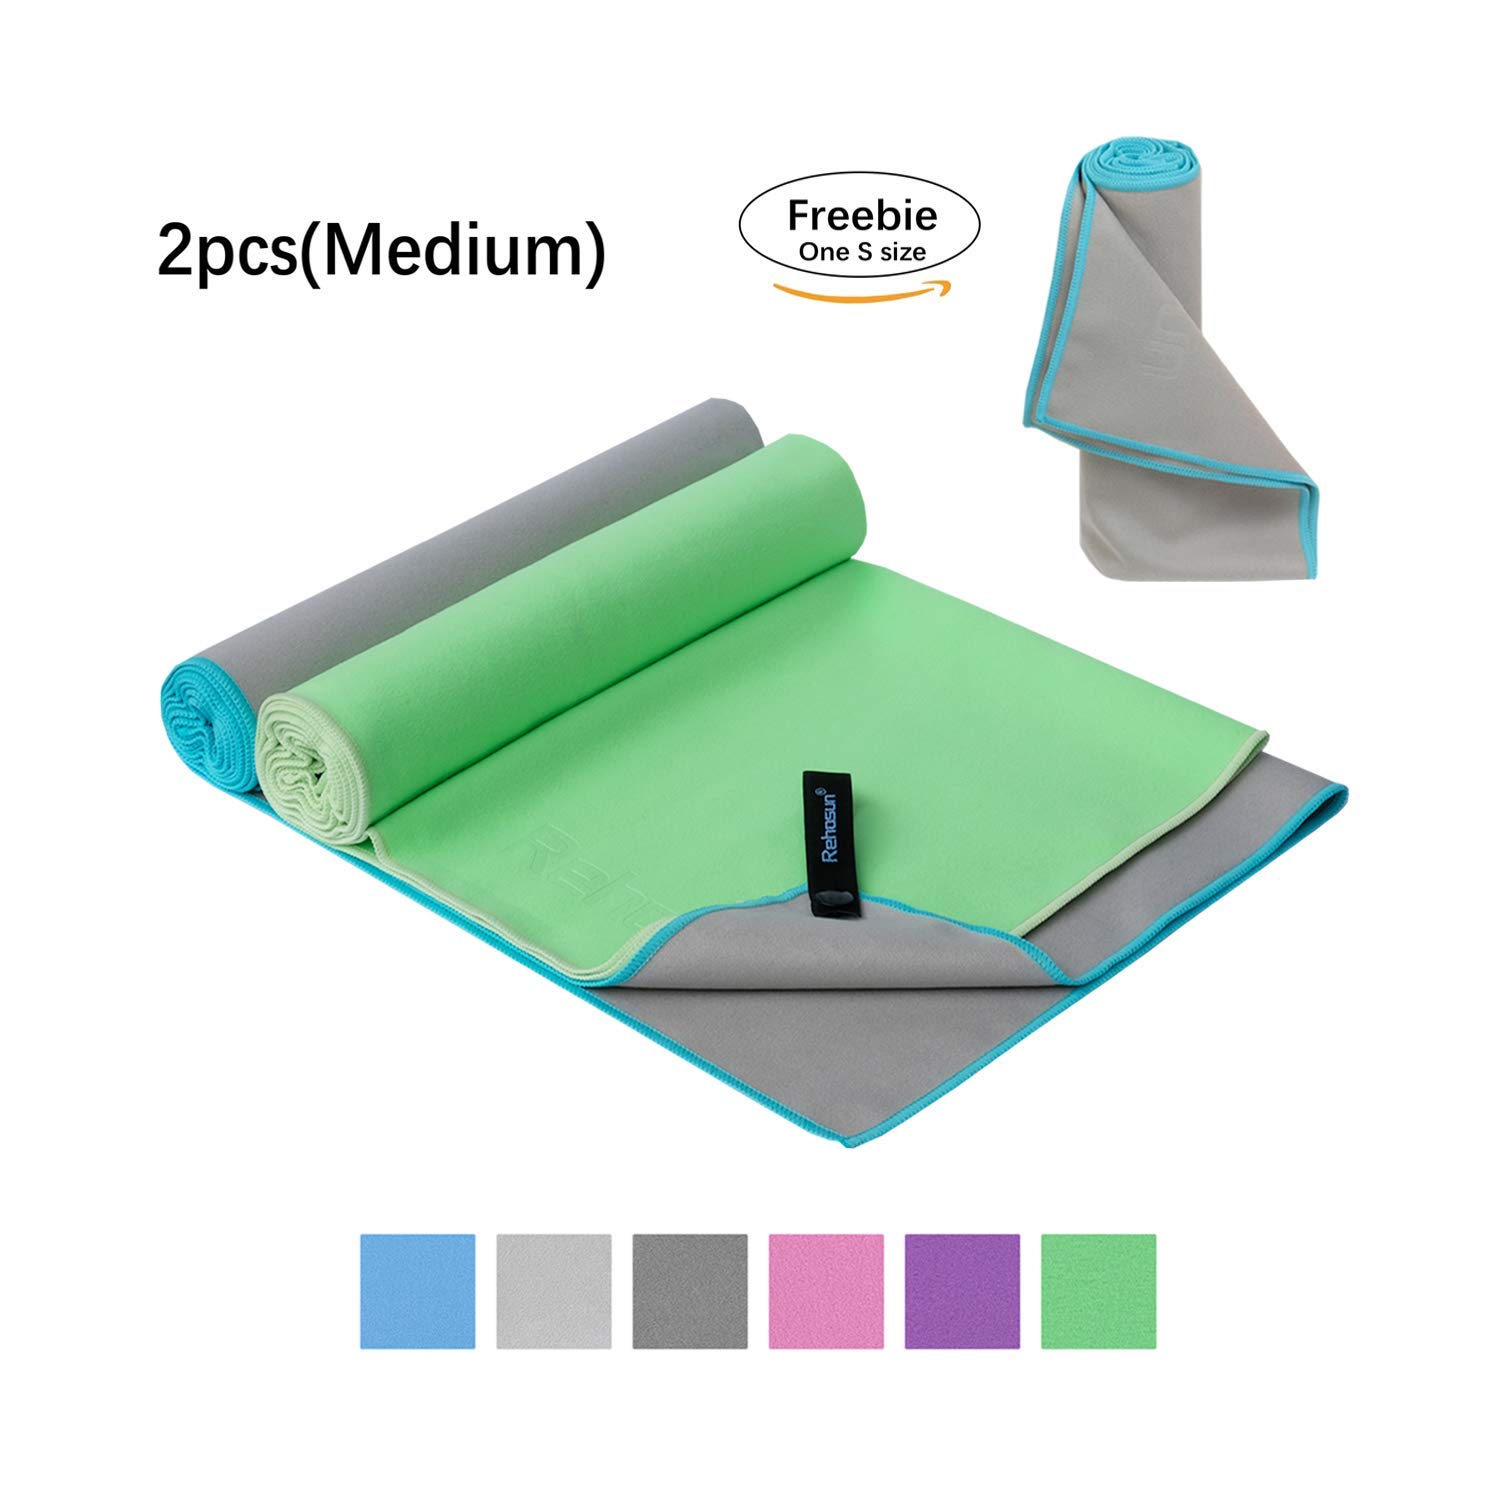 Rehosun Microfiber Towel Sports & Travel & Beach & Camping & Gym, Super Absorbent & Fast Drying